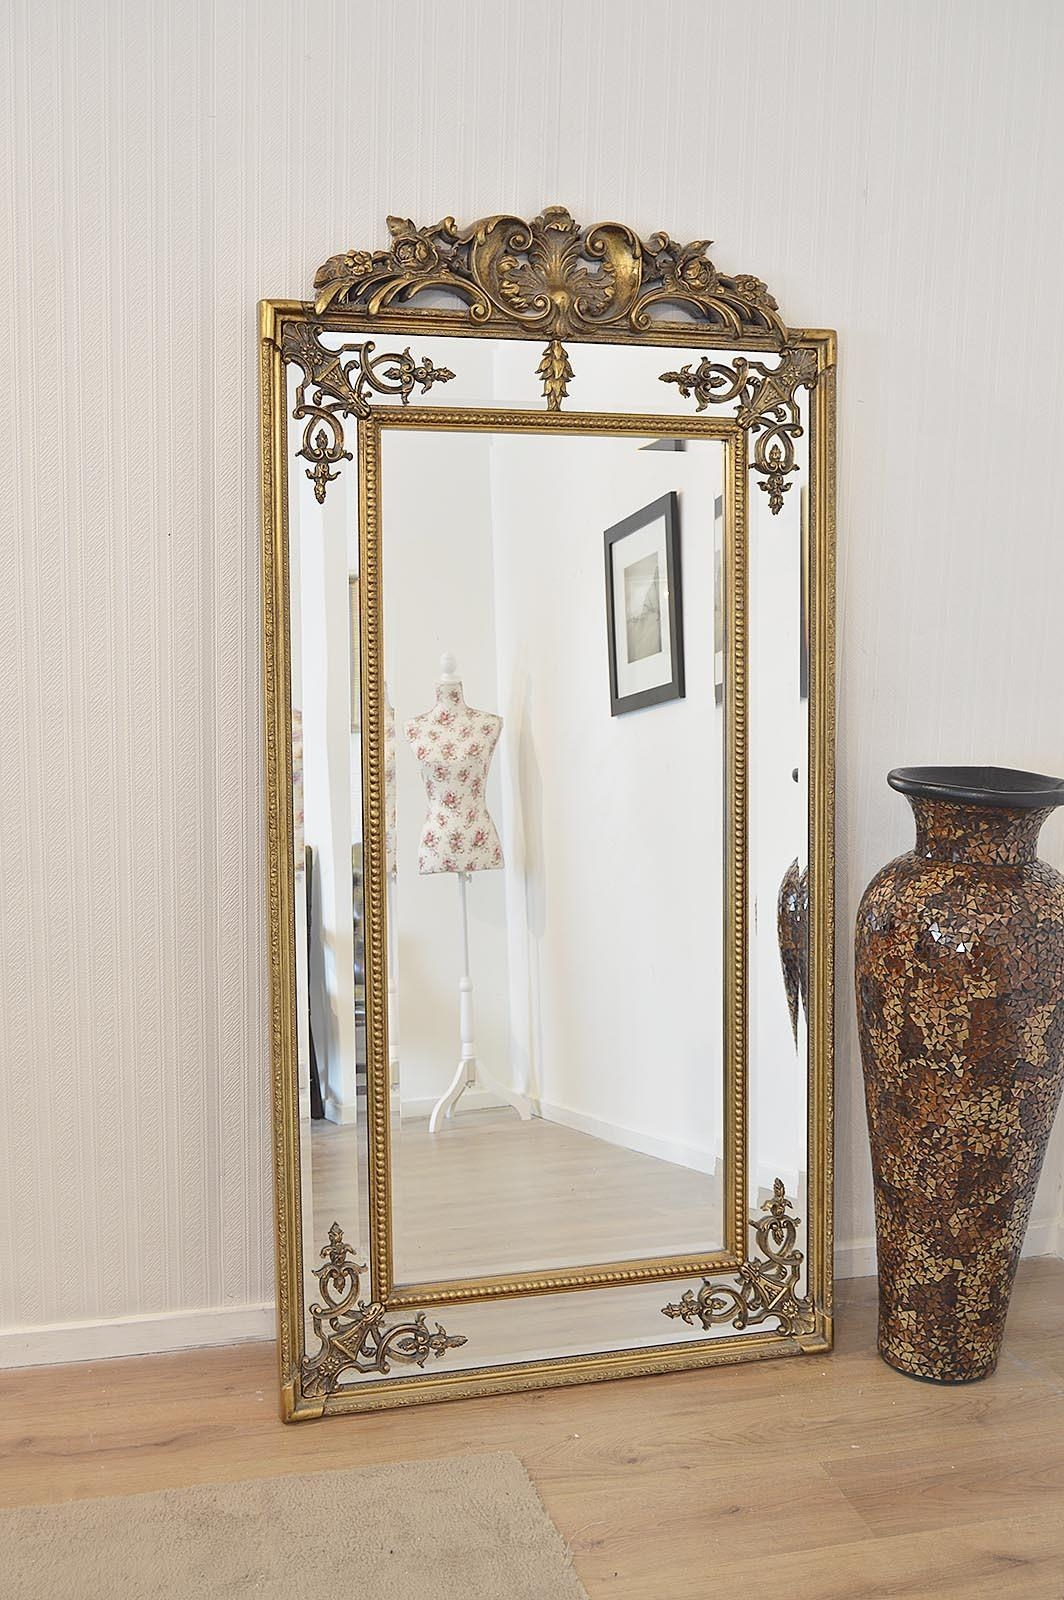 Ornate Mirrors For Sale 125 Awesome Exterior With Large Wall With Extra Large Ornate Mirror (Image 18 of 20)